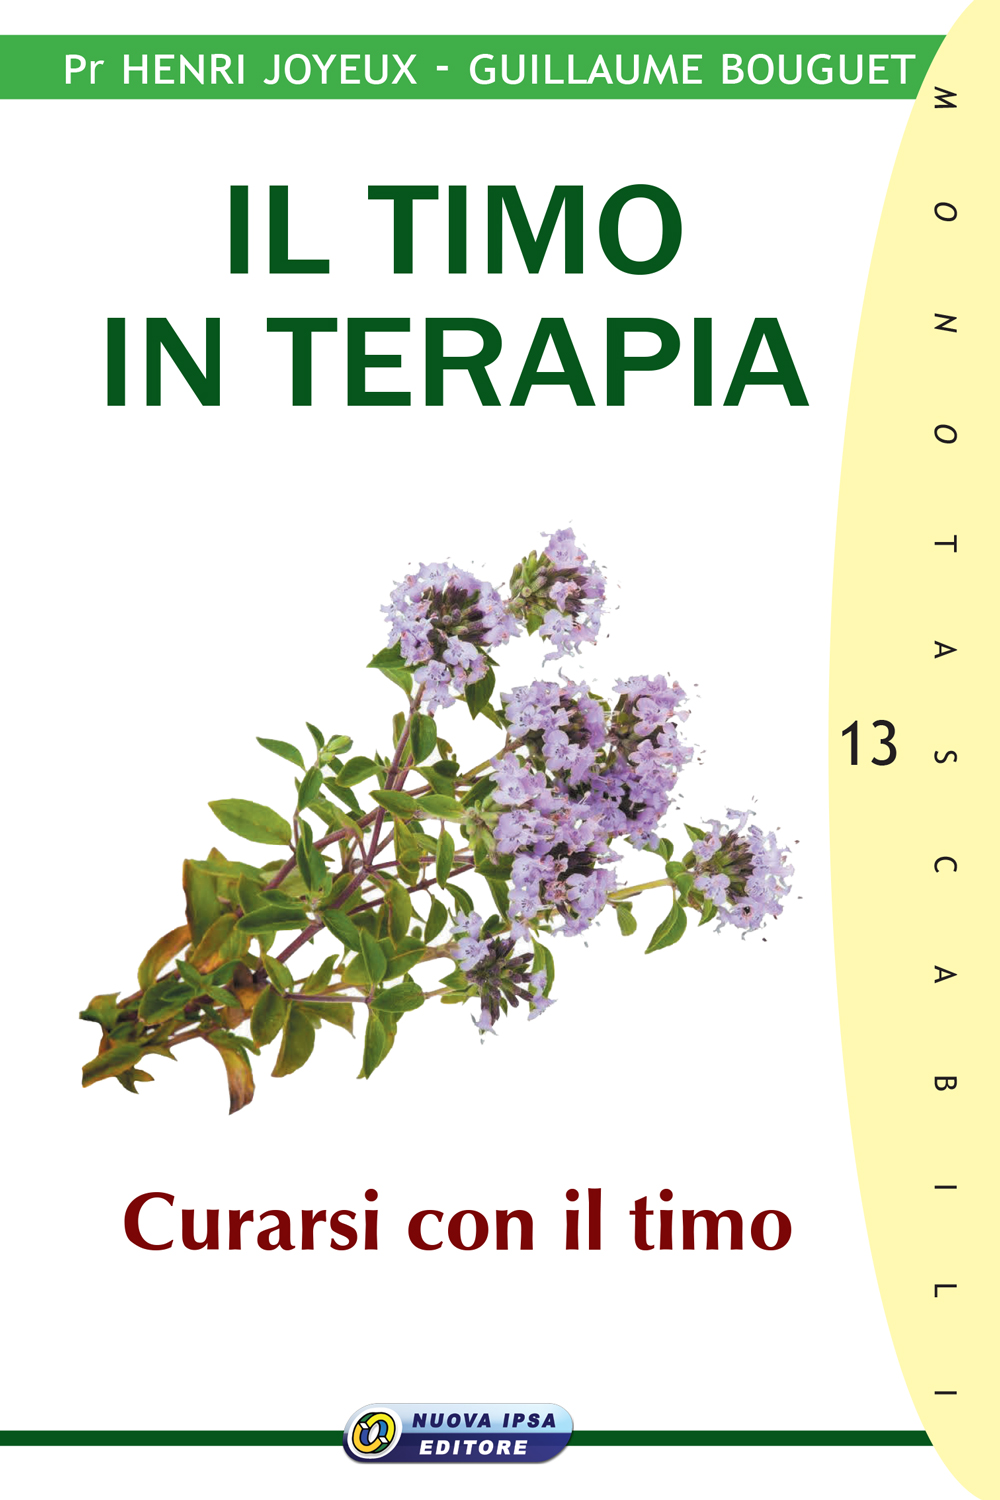 Il timo in terapia (Remainders) di Pr Henri Joyeux